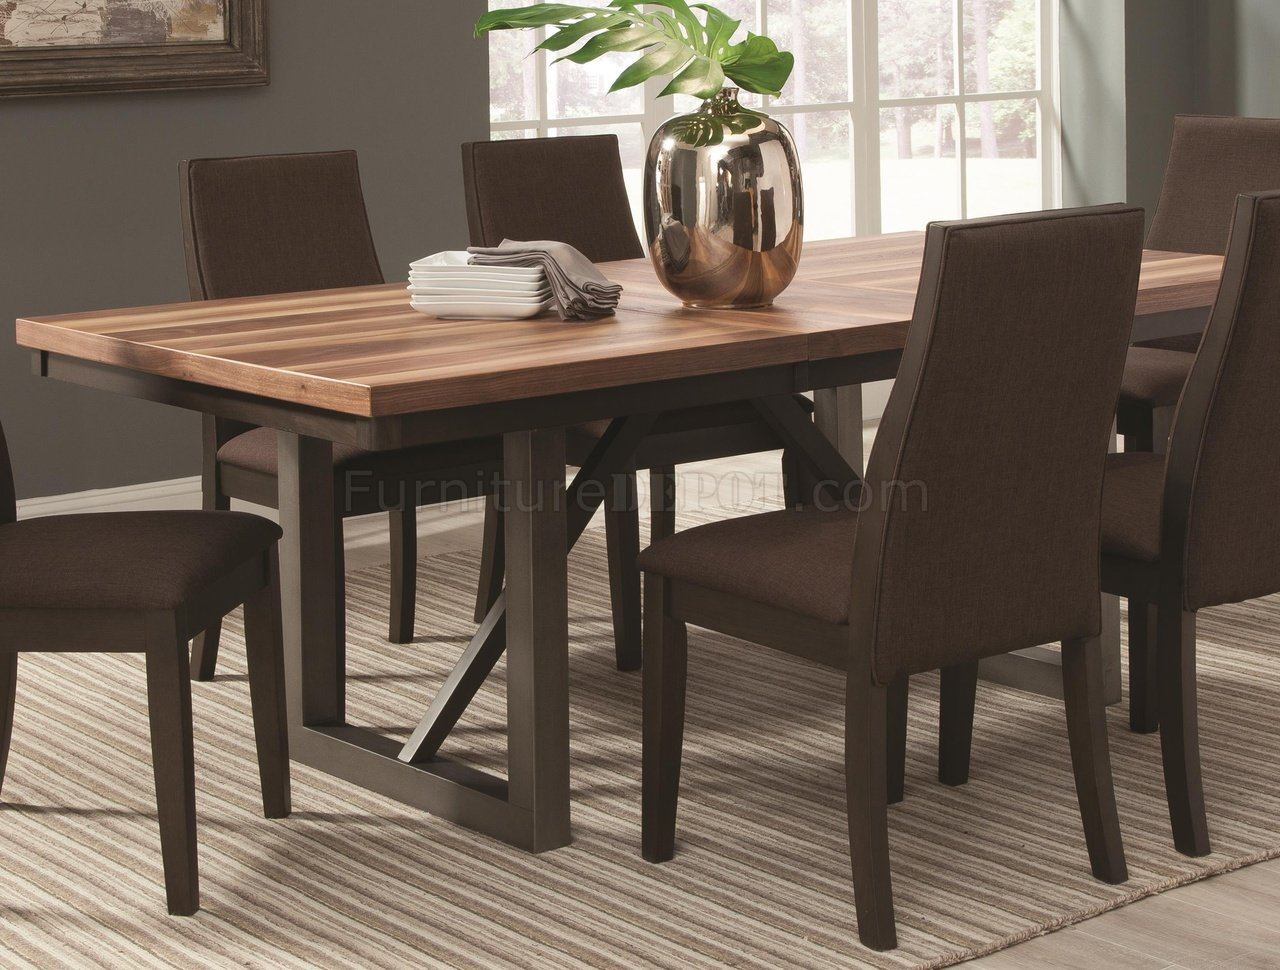 Spring Creek Dining Table 106581 By Coaster W/Optional Chairs